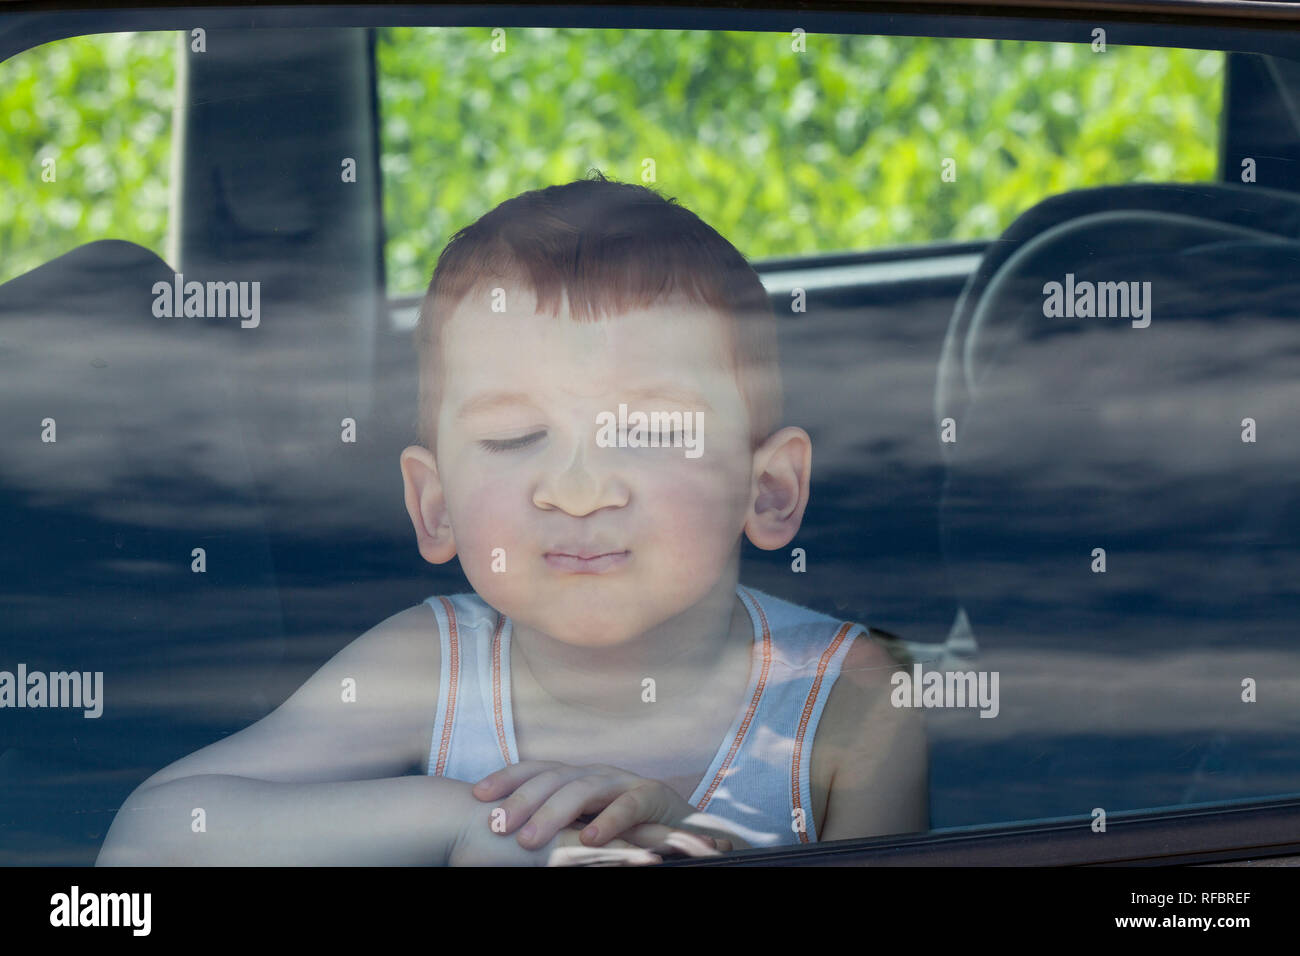 the boy pressed his nose to the glass in the car, during long trips, bored child - Stock Image